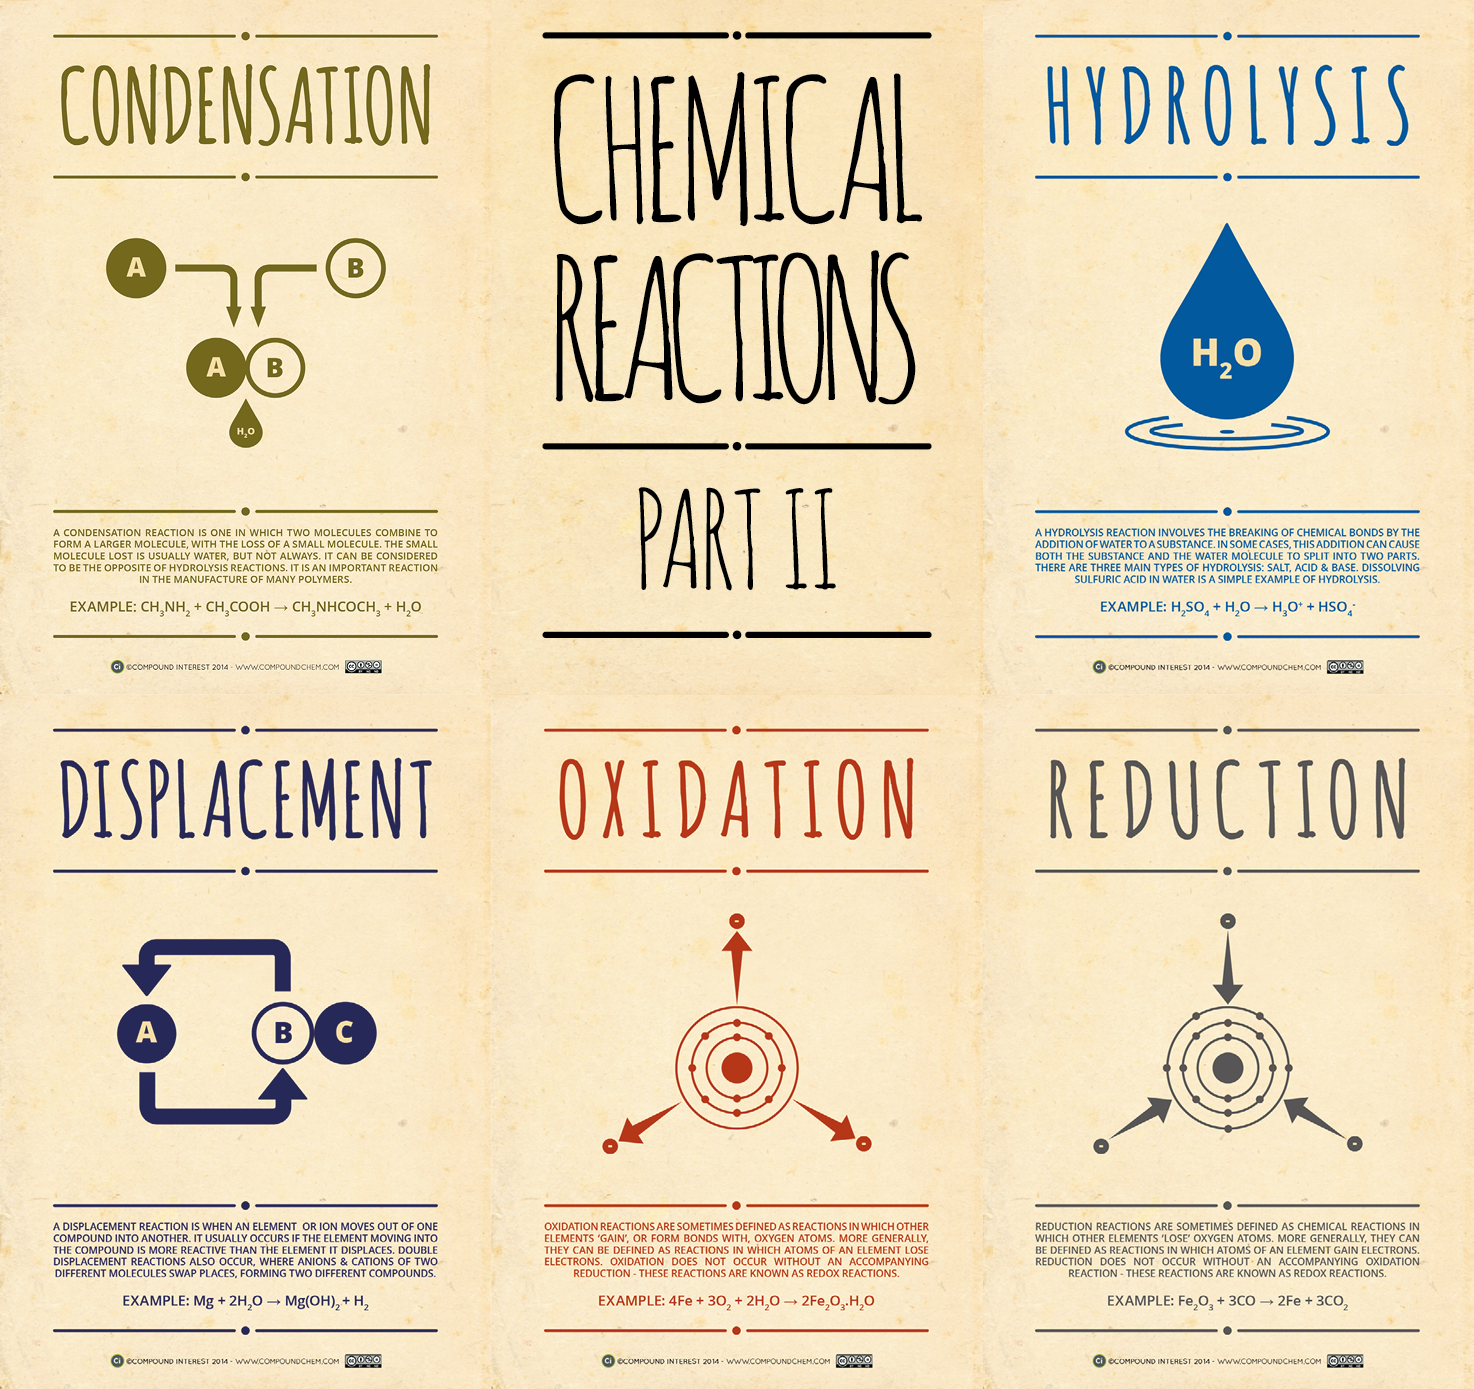 Here S The Second Part Of The Chemical Reactions Posters This Time Featuring Condensation